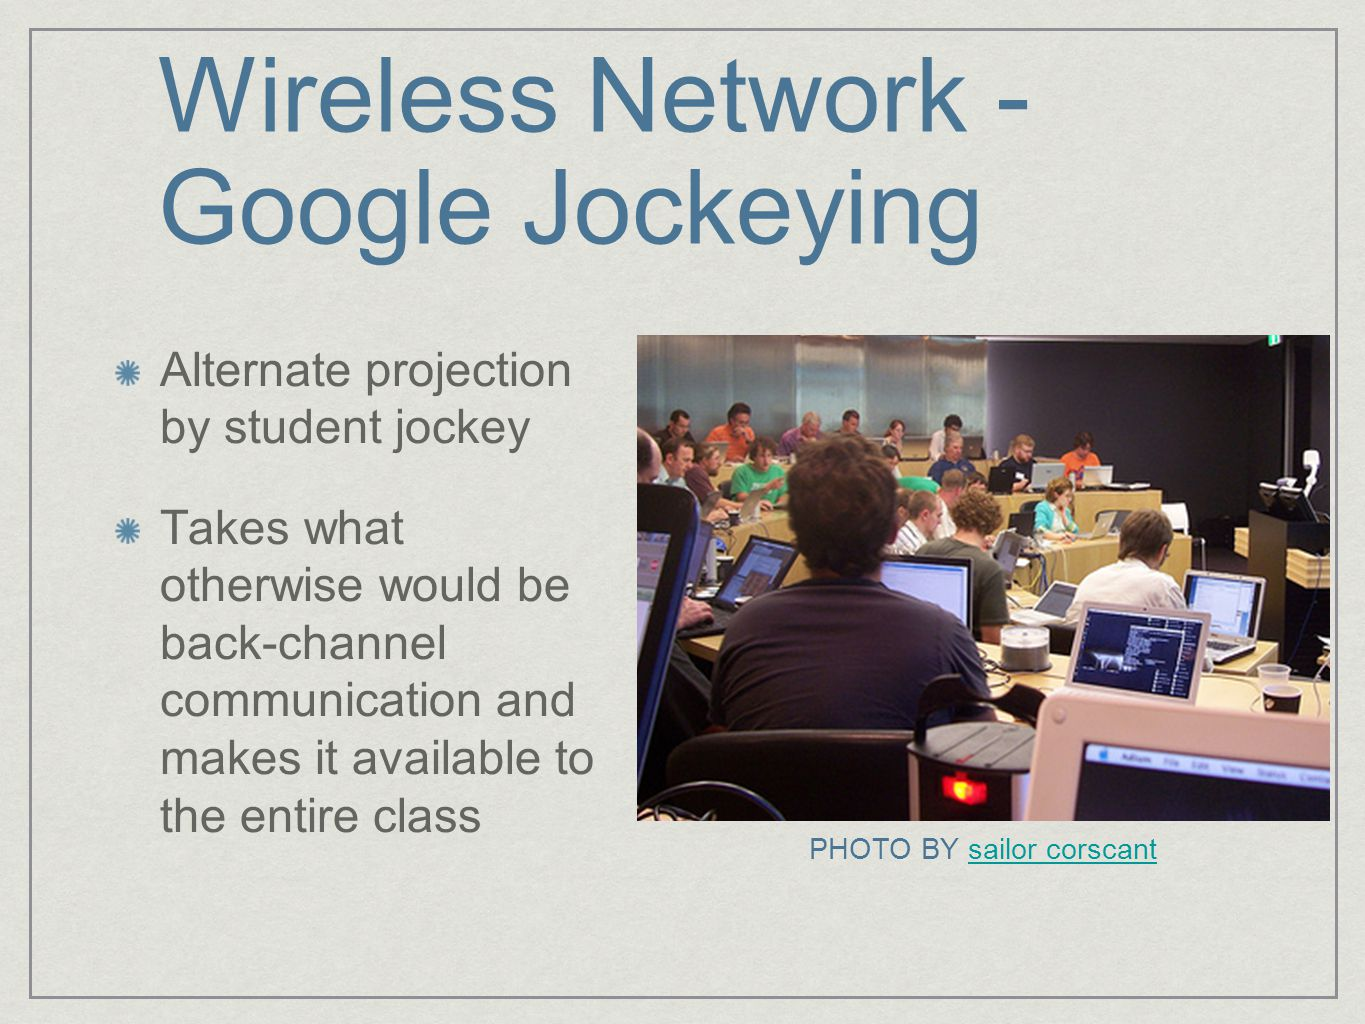 Wireless Network - Google Jockeying Alternate projection by student jockey Takes what otherwise would be back-channel communication and makes it available to the entire class PHOTO BY sailor corscantsailor corscant